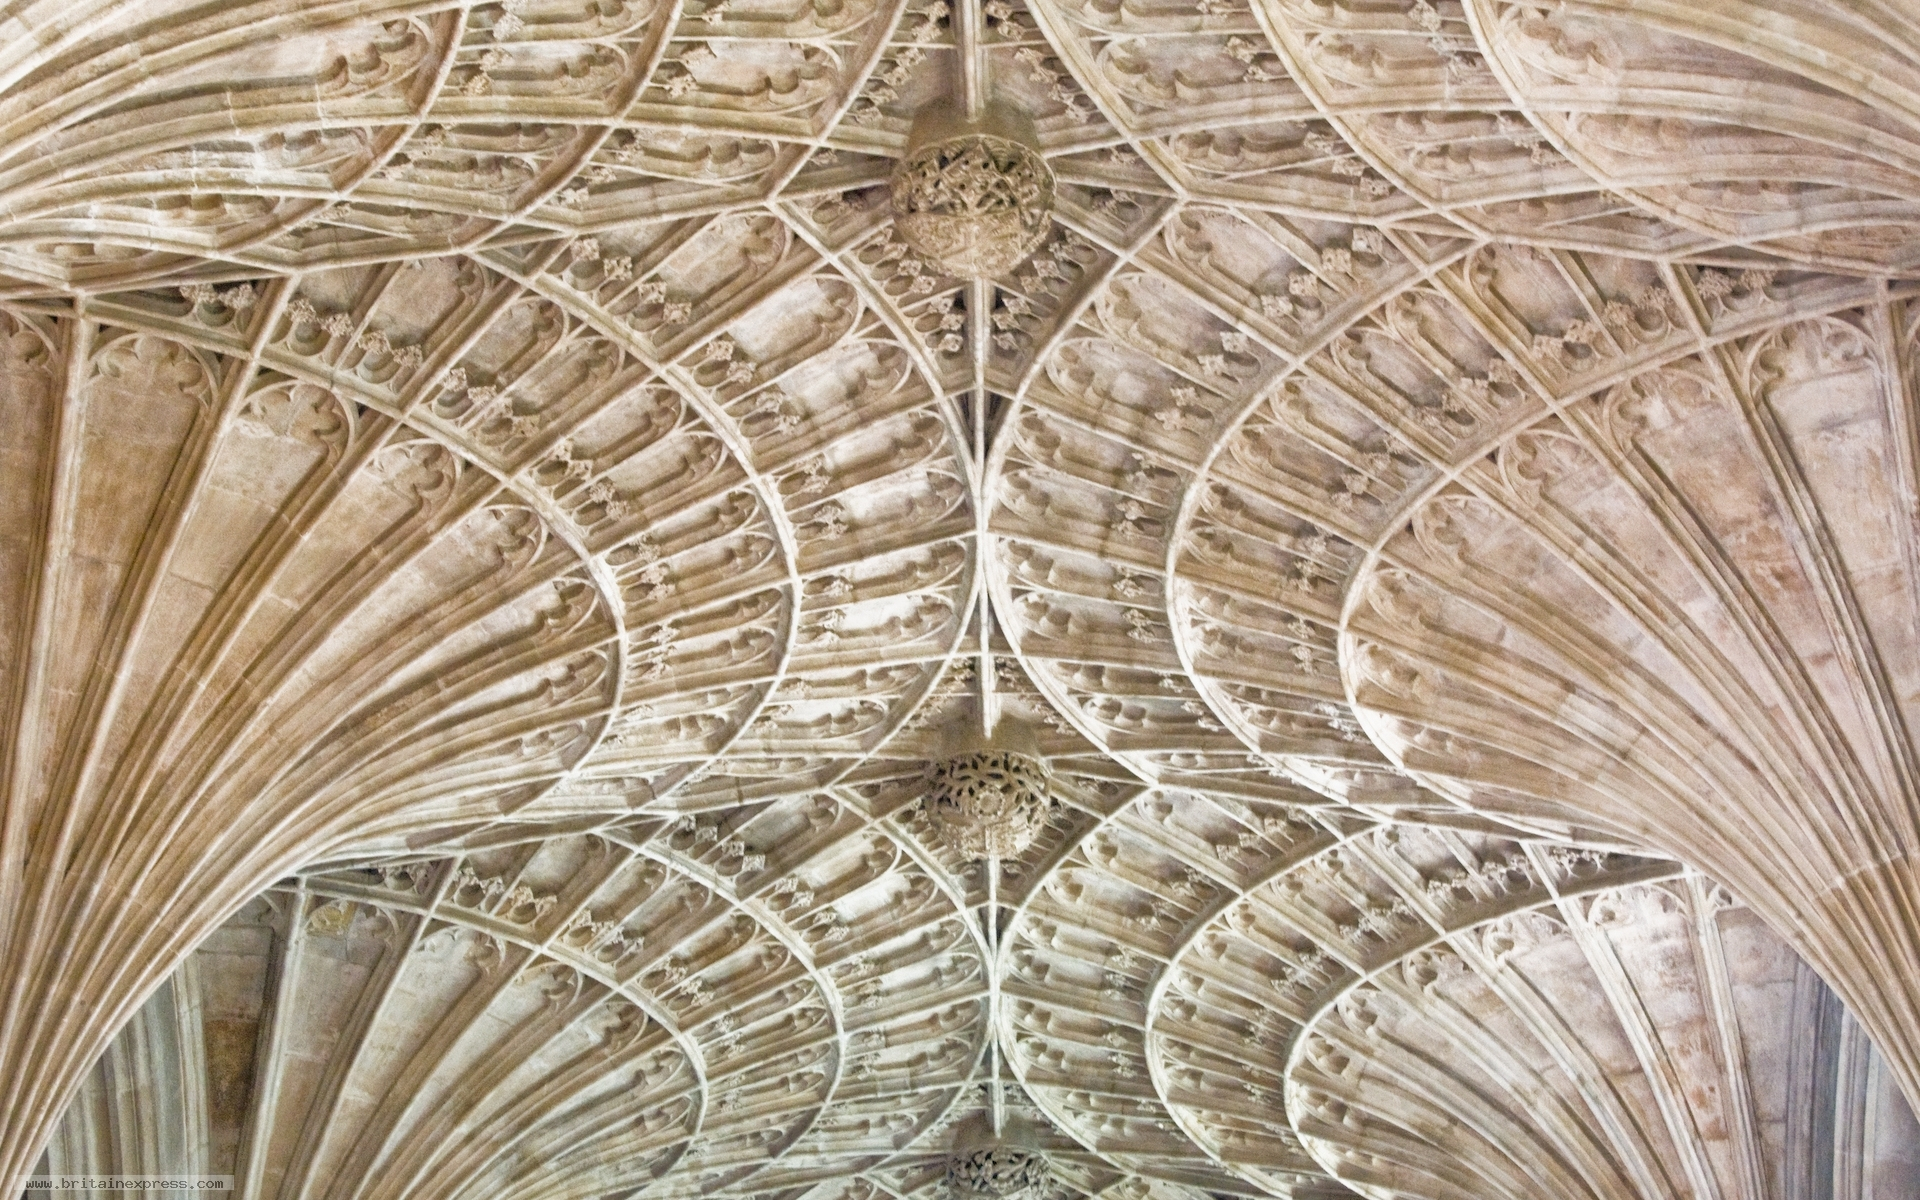 Photo Of Ely Cathedral Vaulting